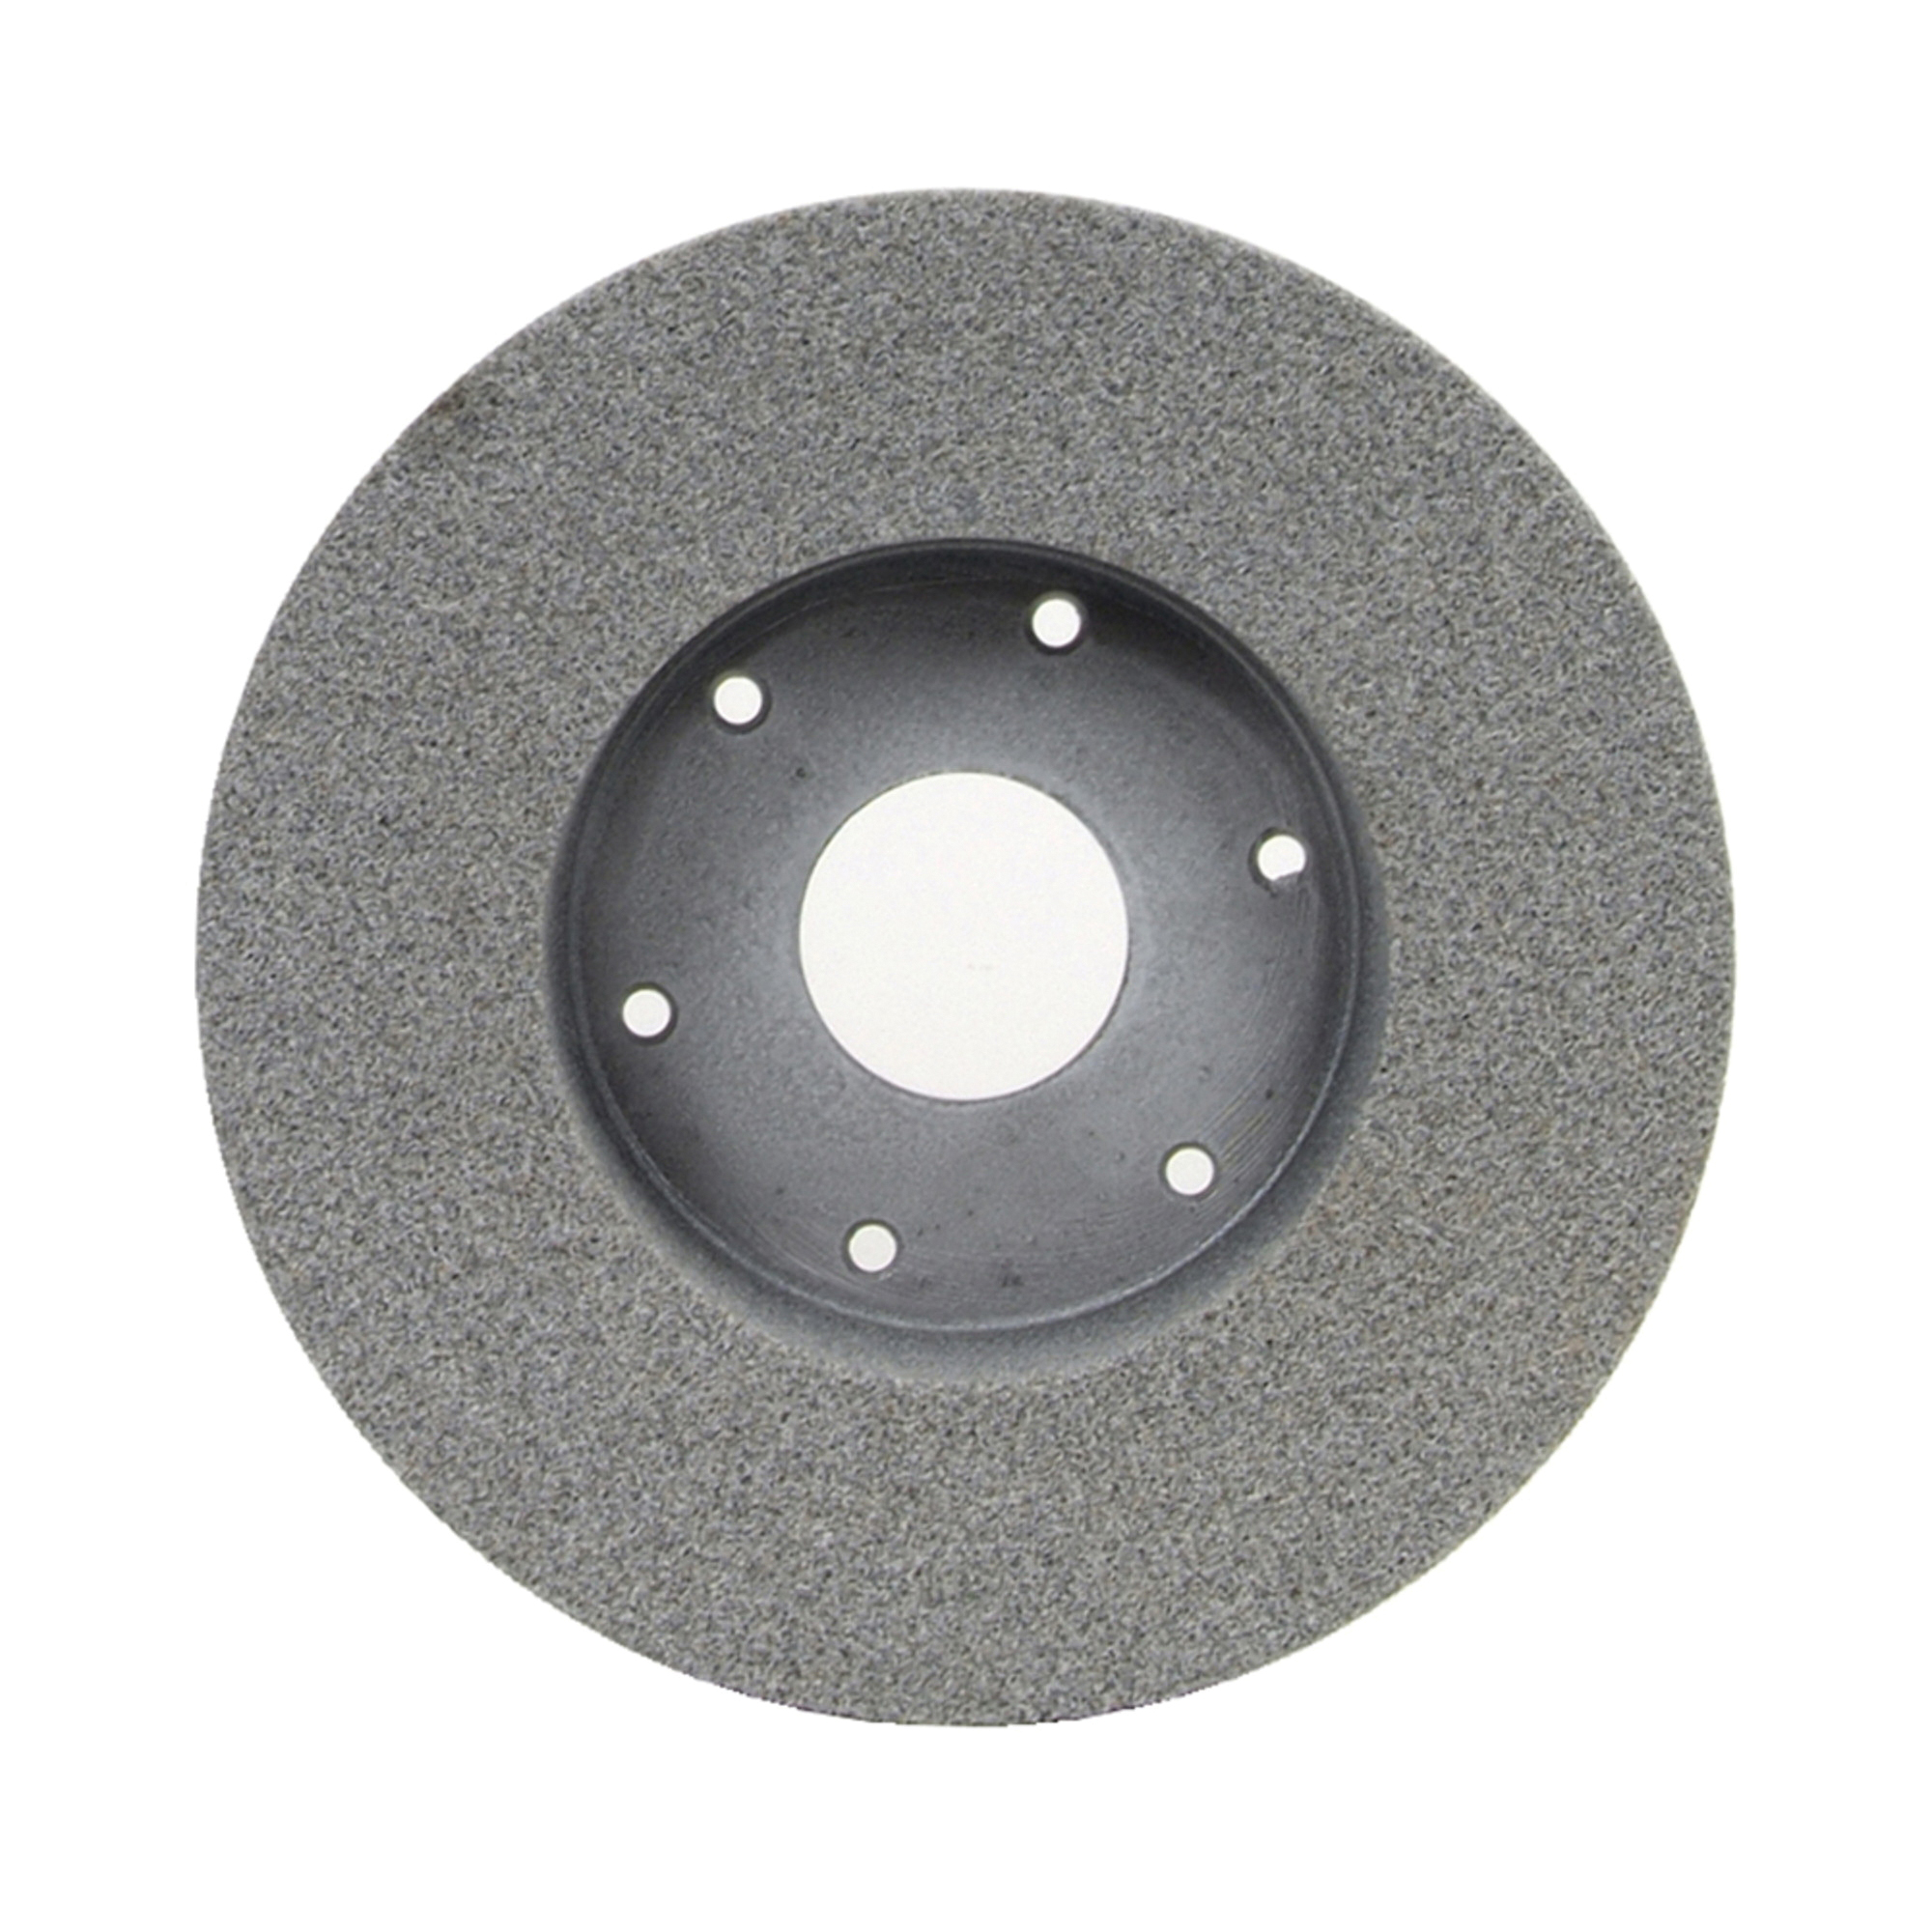 Norton® 66253049115 32A Plate Mounted Toolroom Wheel, 9 in Dia x 2 in THK, 4-15/16 in Center Hole, 46 Grit, Aluminum Oxide Abrasive